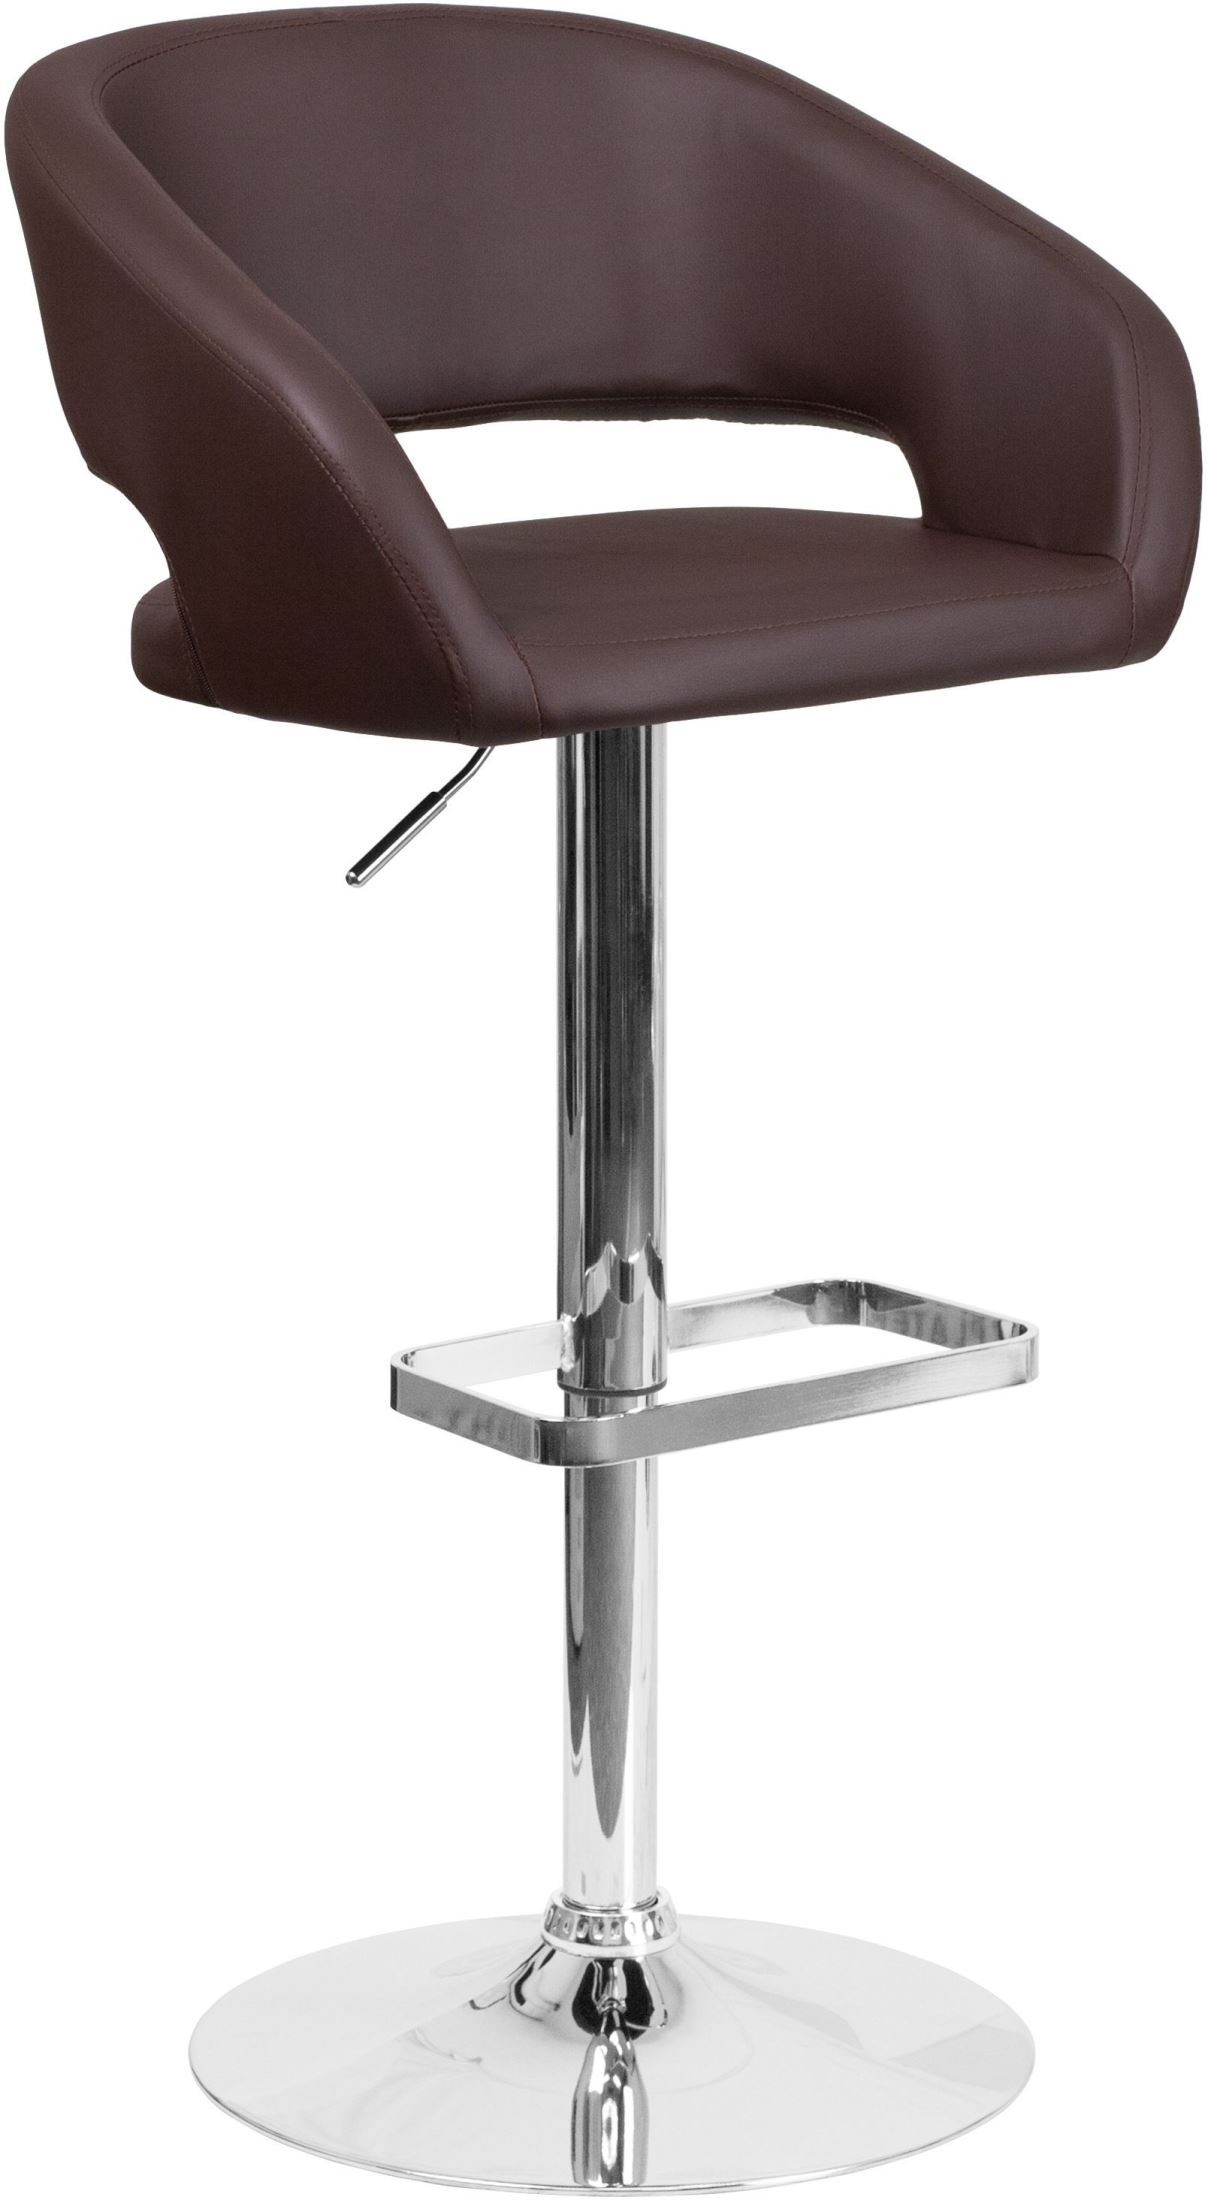 Brown Adjustable Bar Stool Rounded Brown Vinyl Adjustable Height Bar Stool From